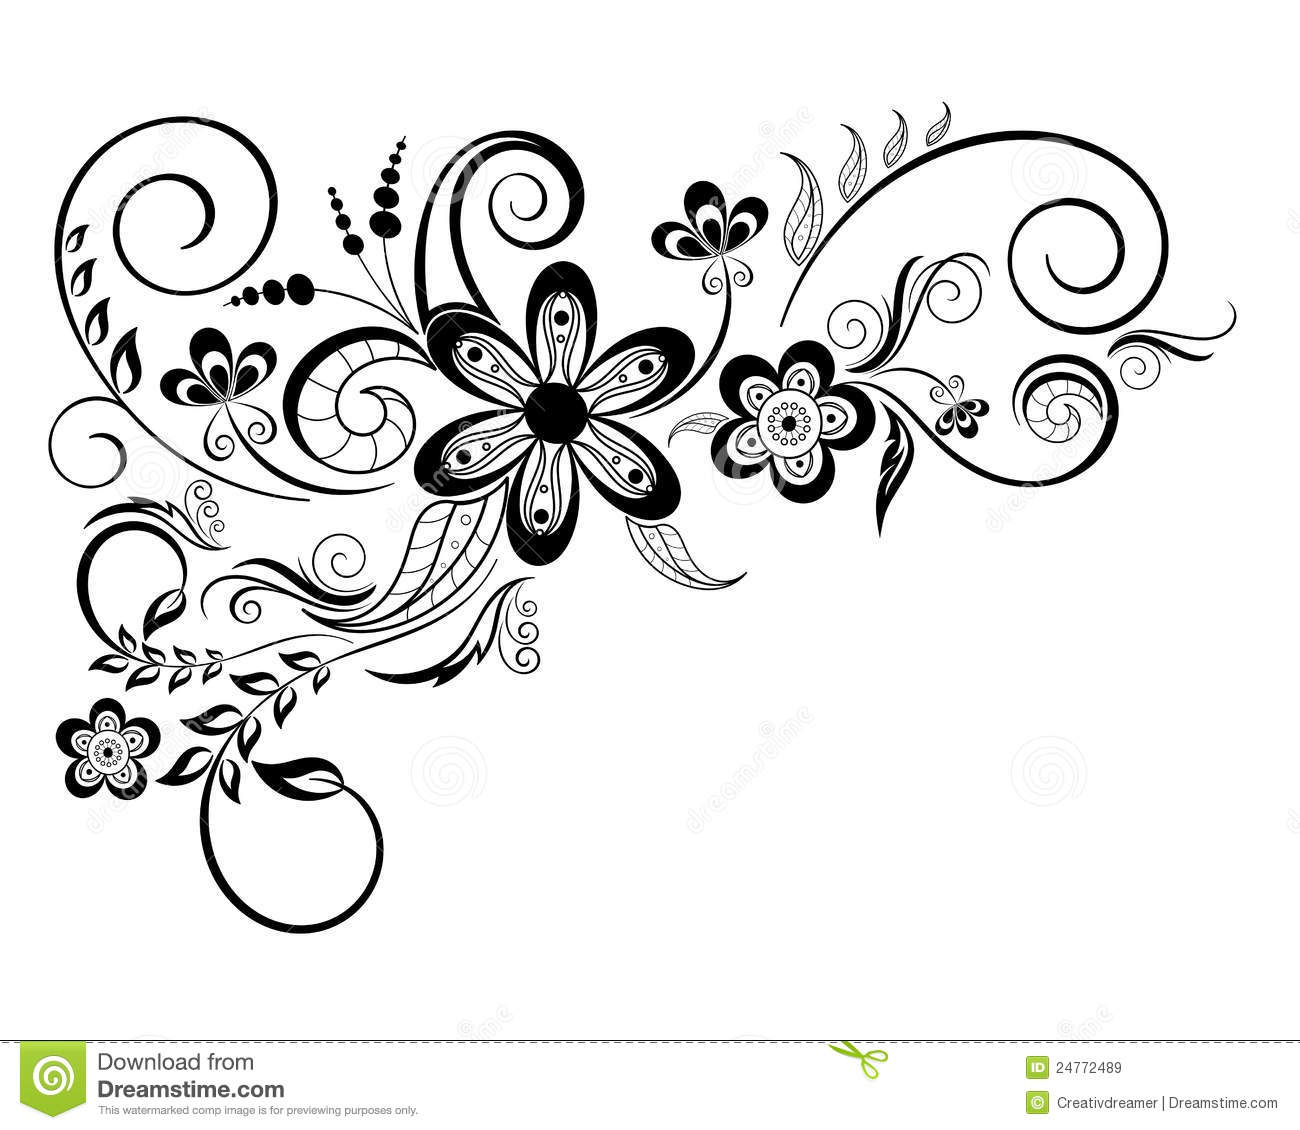 Simple Floral Swirl Patterns Www Pixshark Com Images